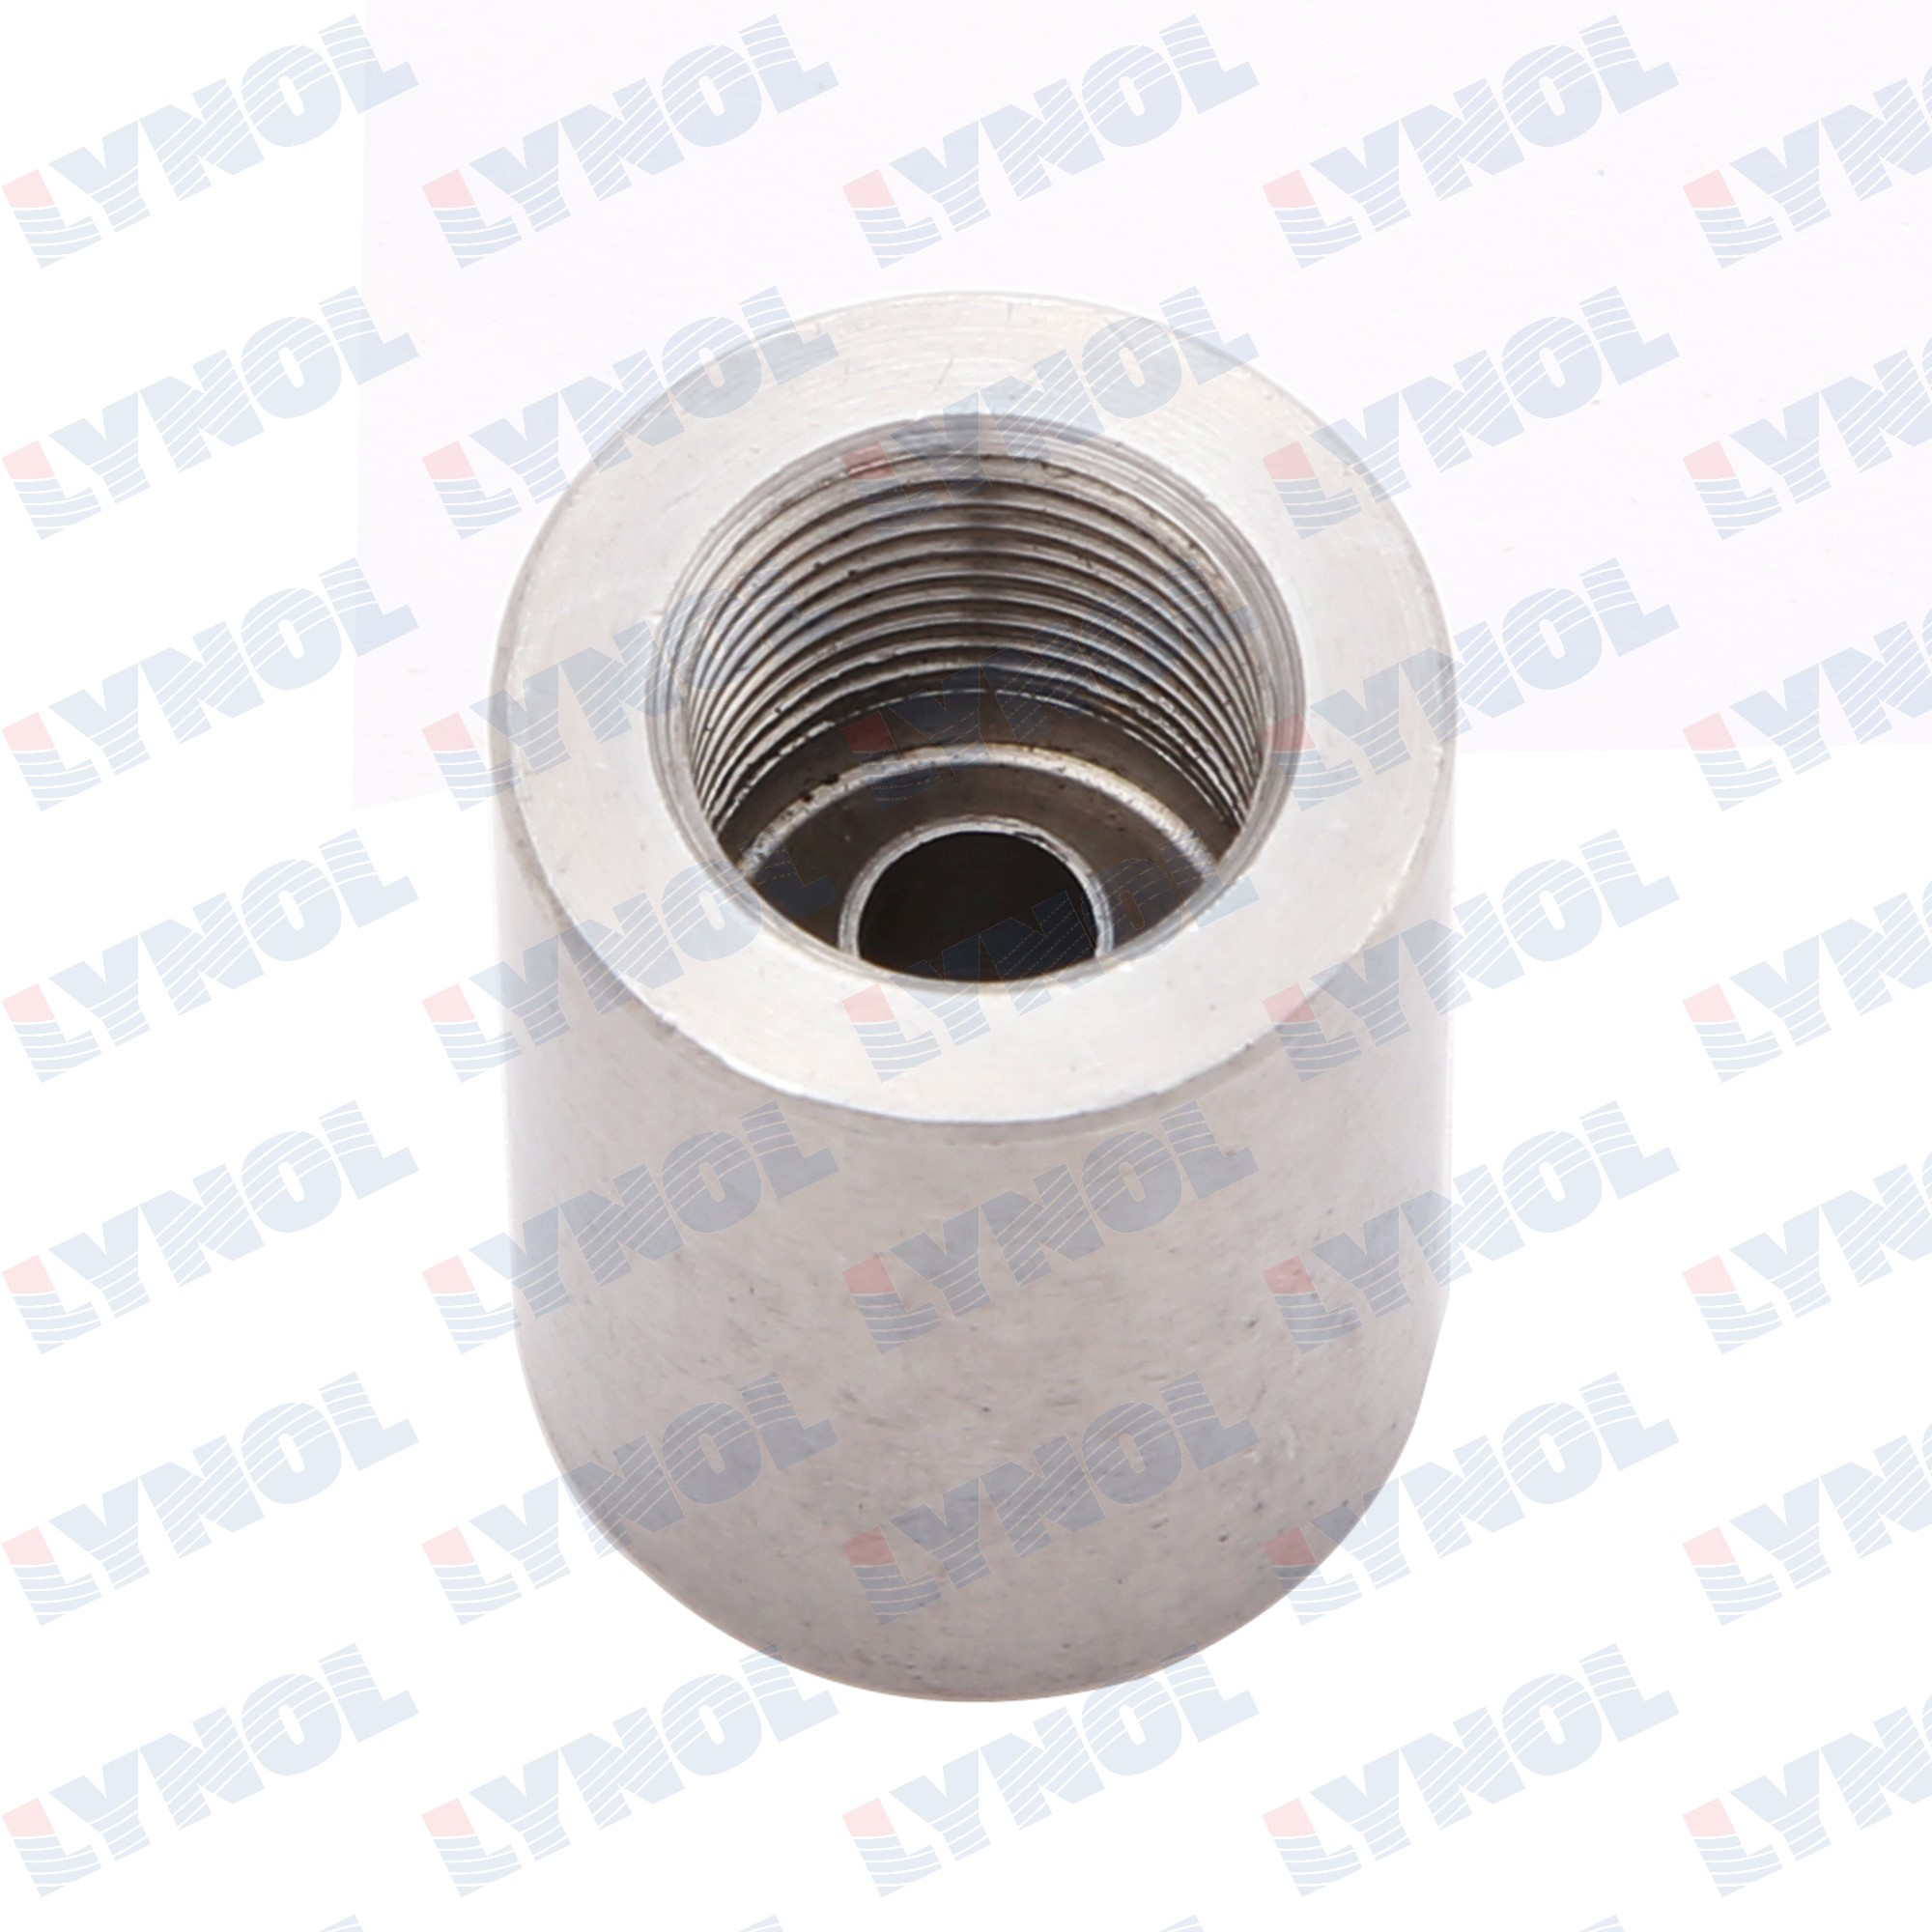 4504008 - SENSOR BUNG - M12*1.0 - Reverse Flare Overall Length 1'', Outside Diameter 3/4''